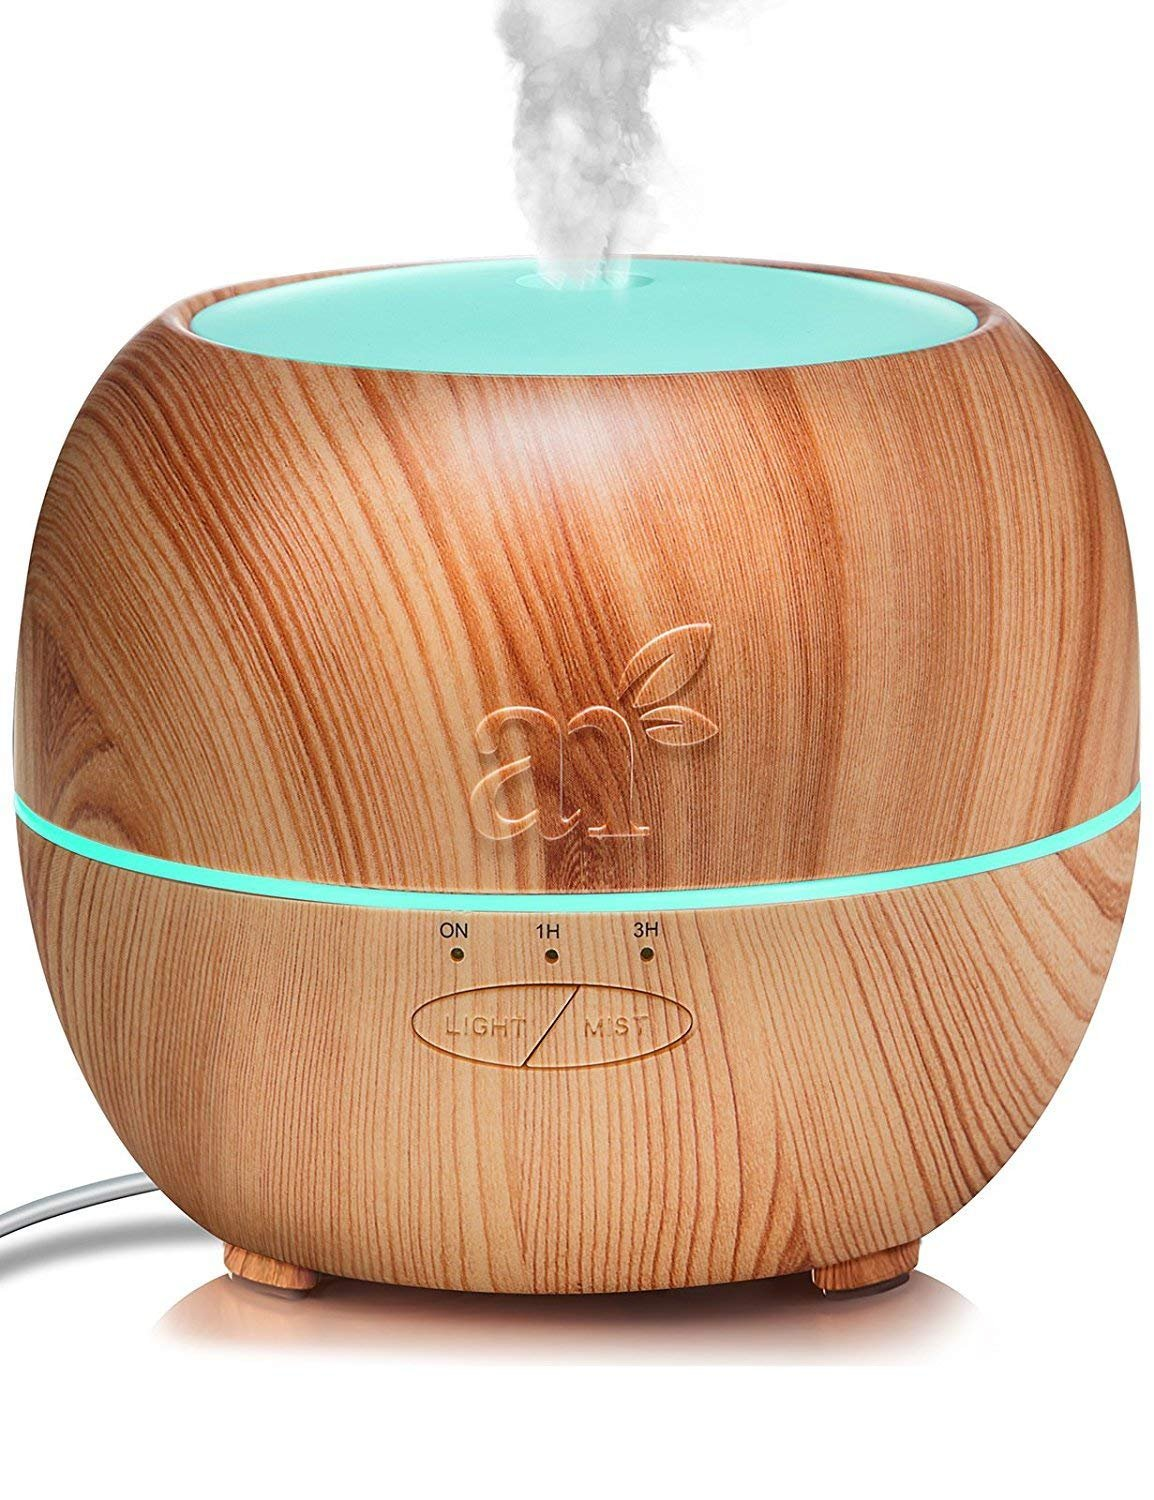 ArtNaturals Aromatherapy Essential Oil Diffuser – (5.0 Fl Oz/150ml Tank) – Ultrasonic Aroma Humidifier - Adjustable Mist Mode, Auto Shut-Off and 7 Color LED Lights – For Home, Office & Bedroom